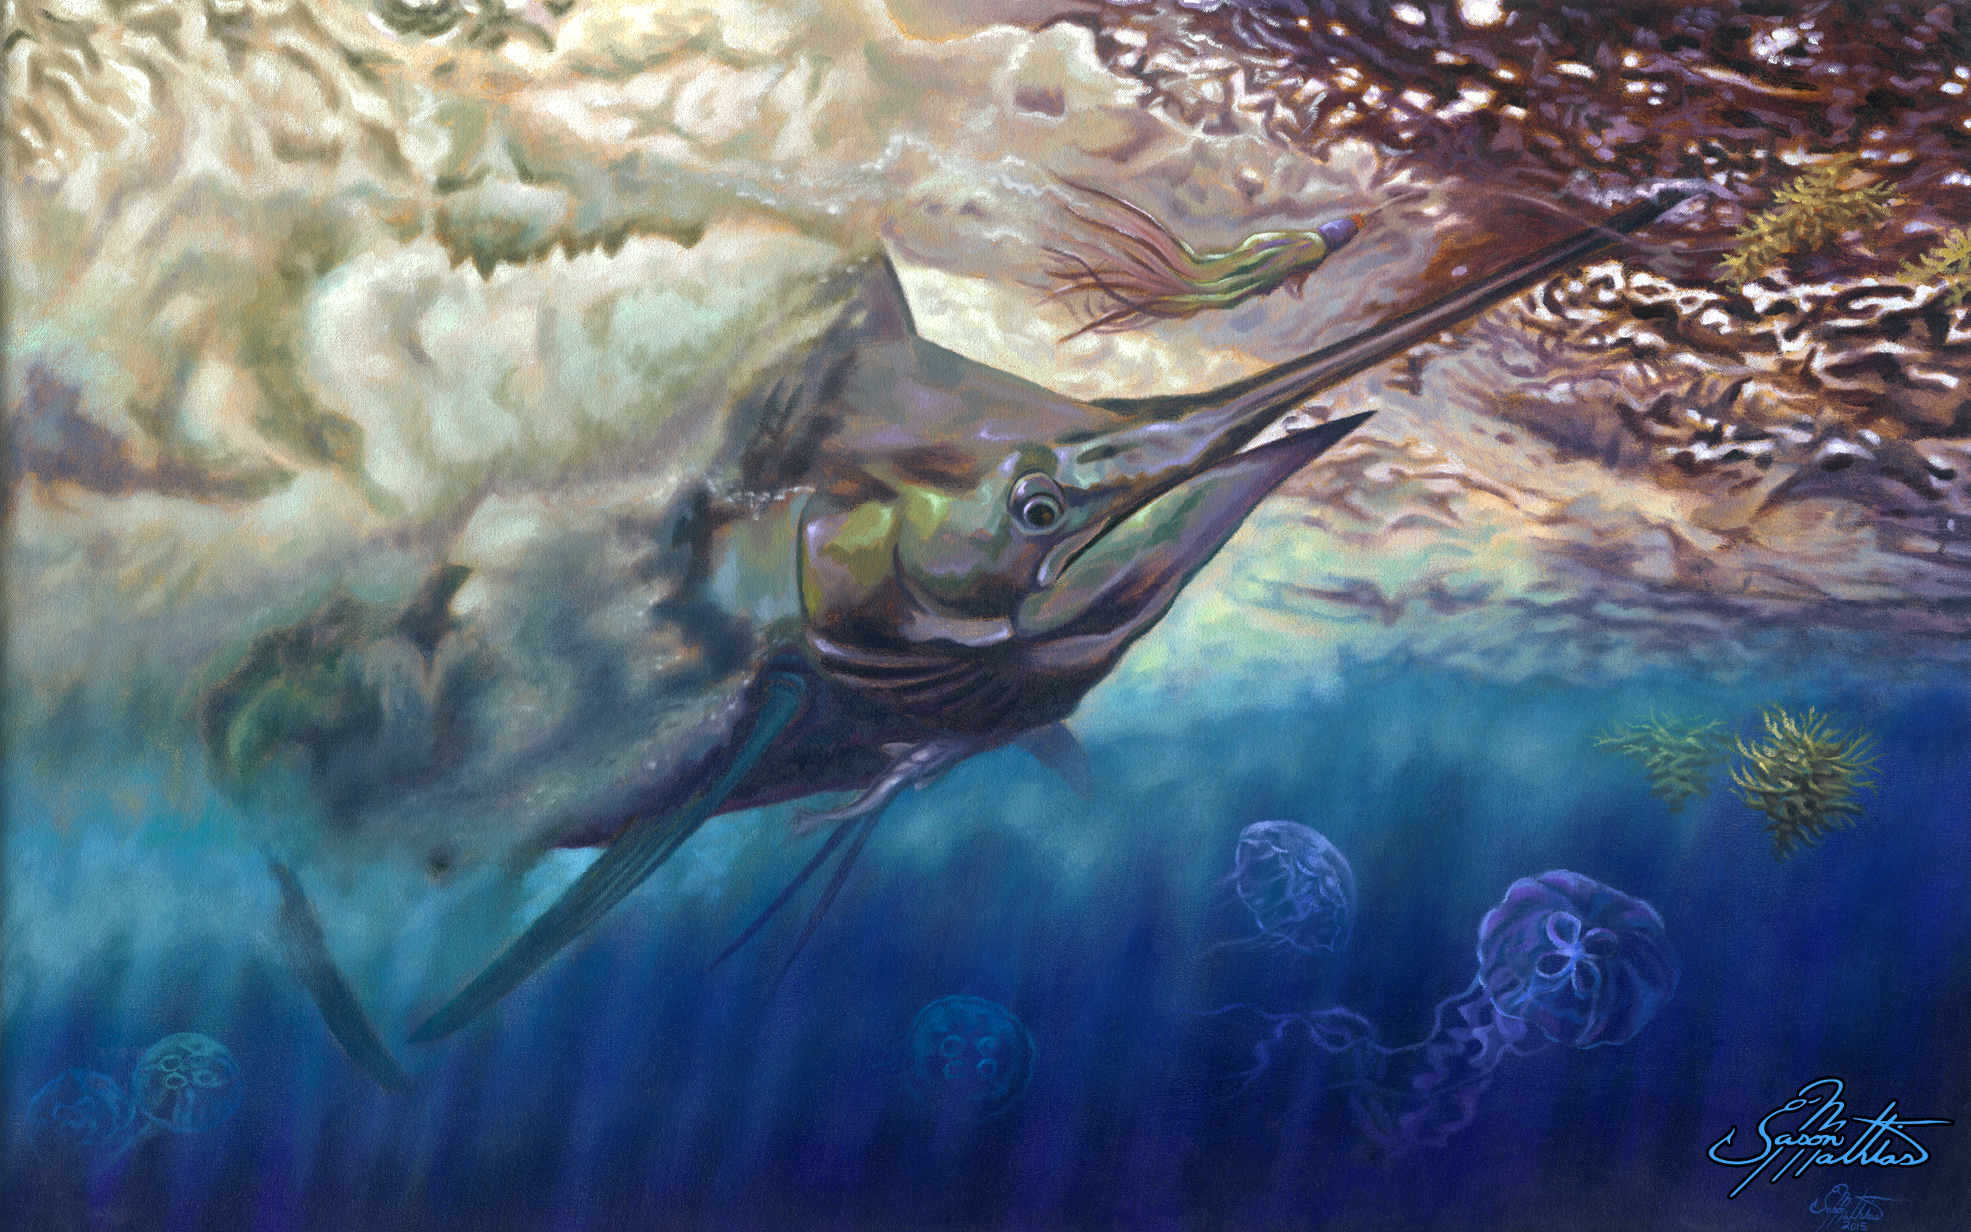 turbulence-blue-marlin-art-jason-mathias.jpg